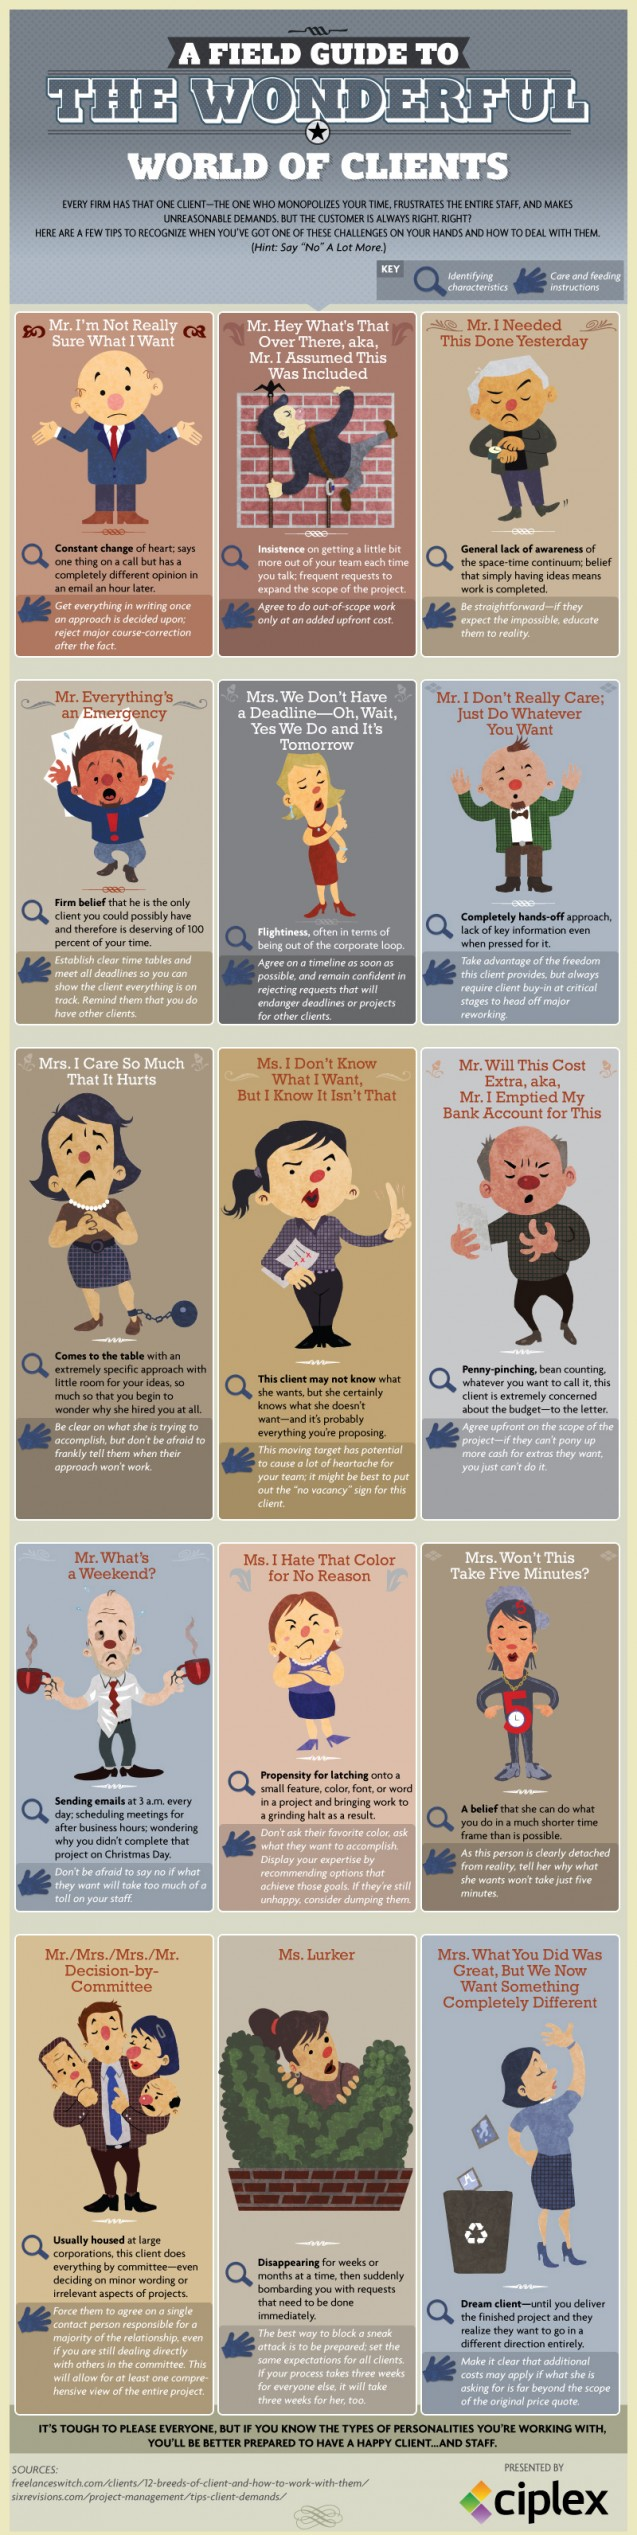 A Guide To Working With Those Wonderful Clients